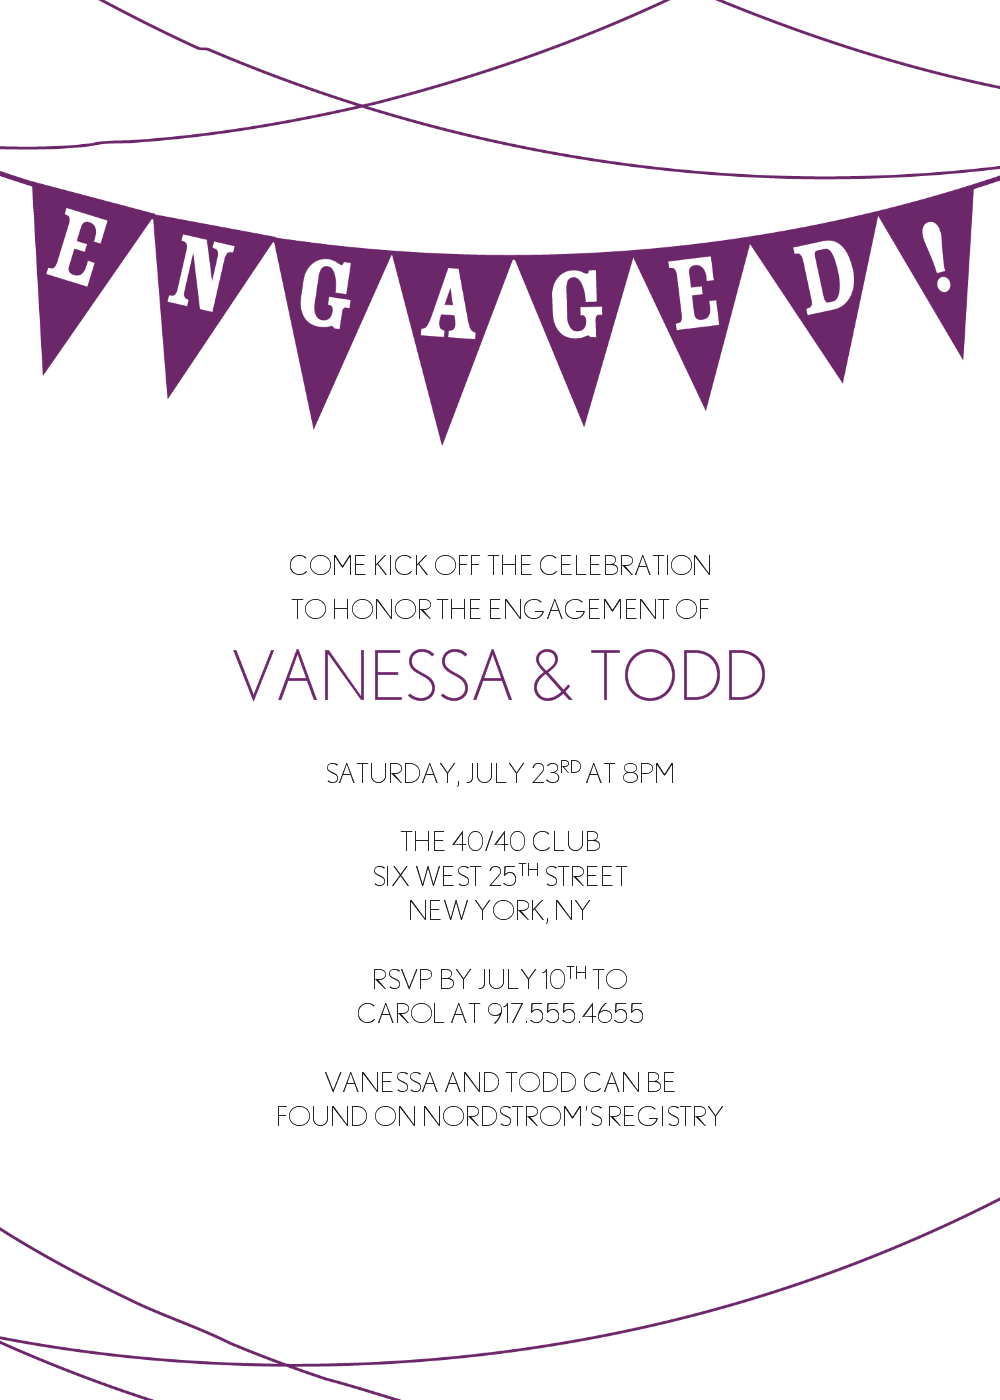 how to word engagement party invitations – How to Word Engagement Party Invitations